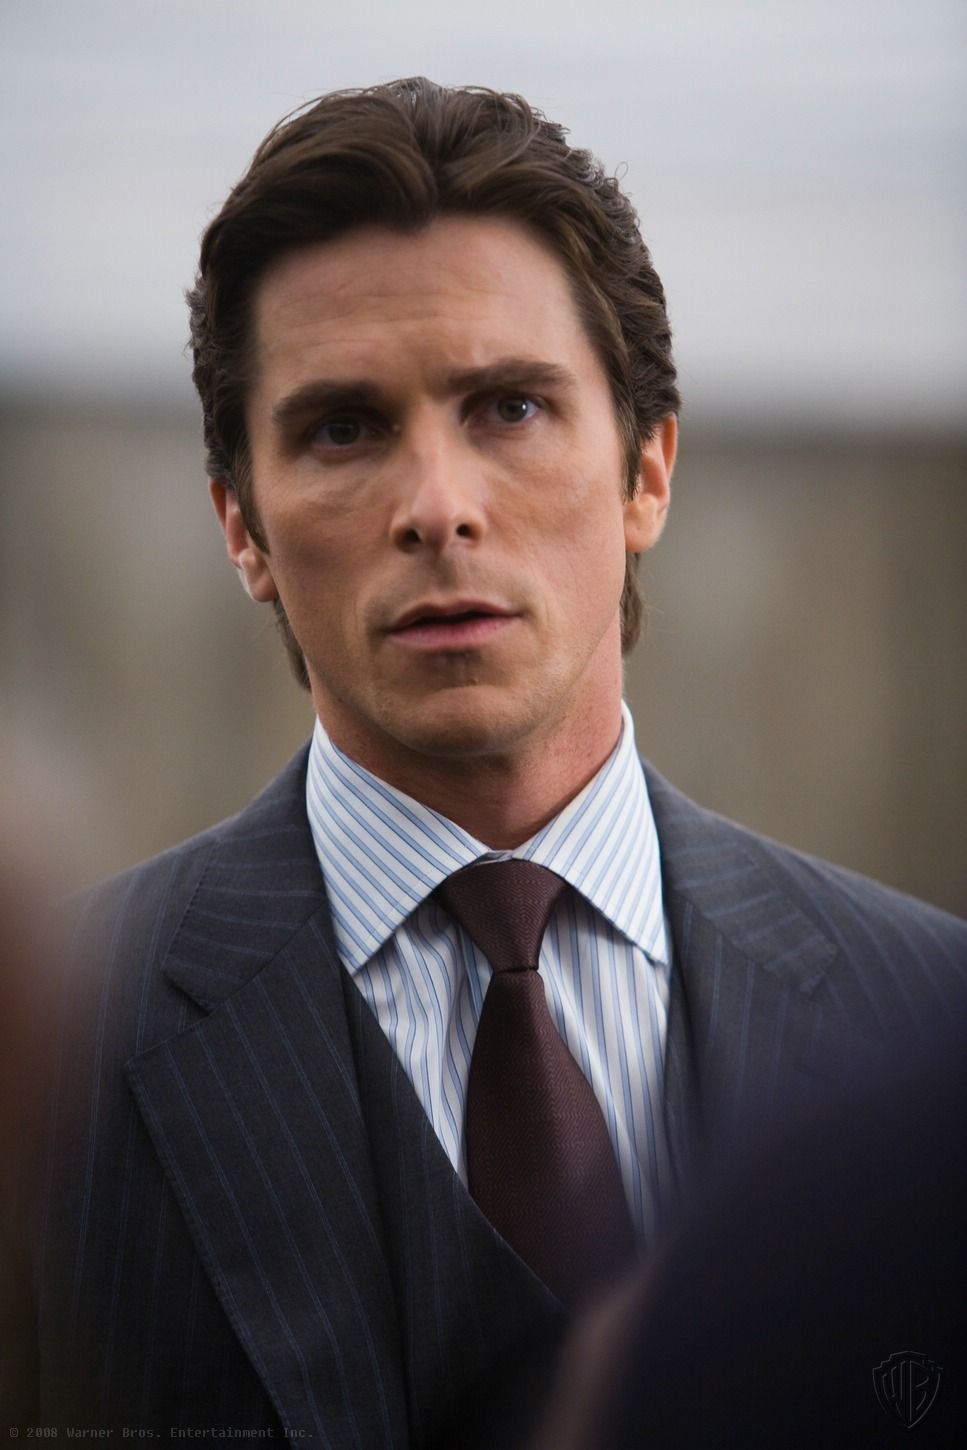 Christian Bale as Bruce Wayne in The Dark Knight. Description from… | Christian Bale | Pinterest ... Christian Bale